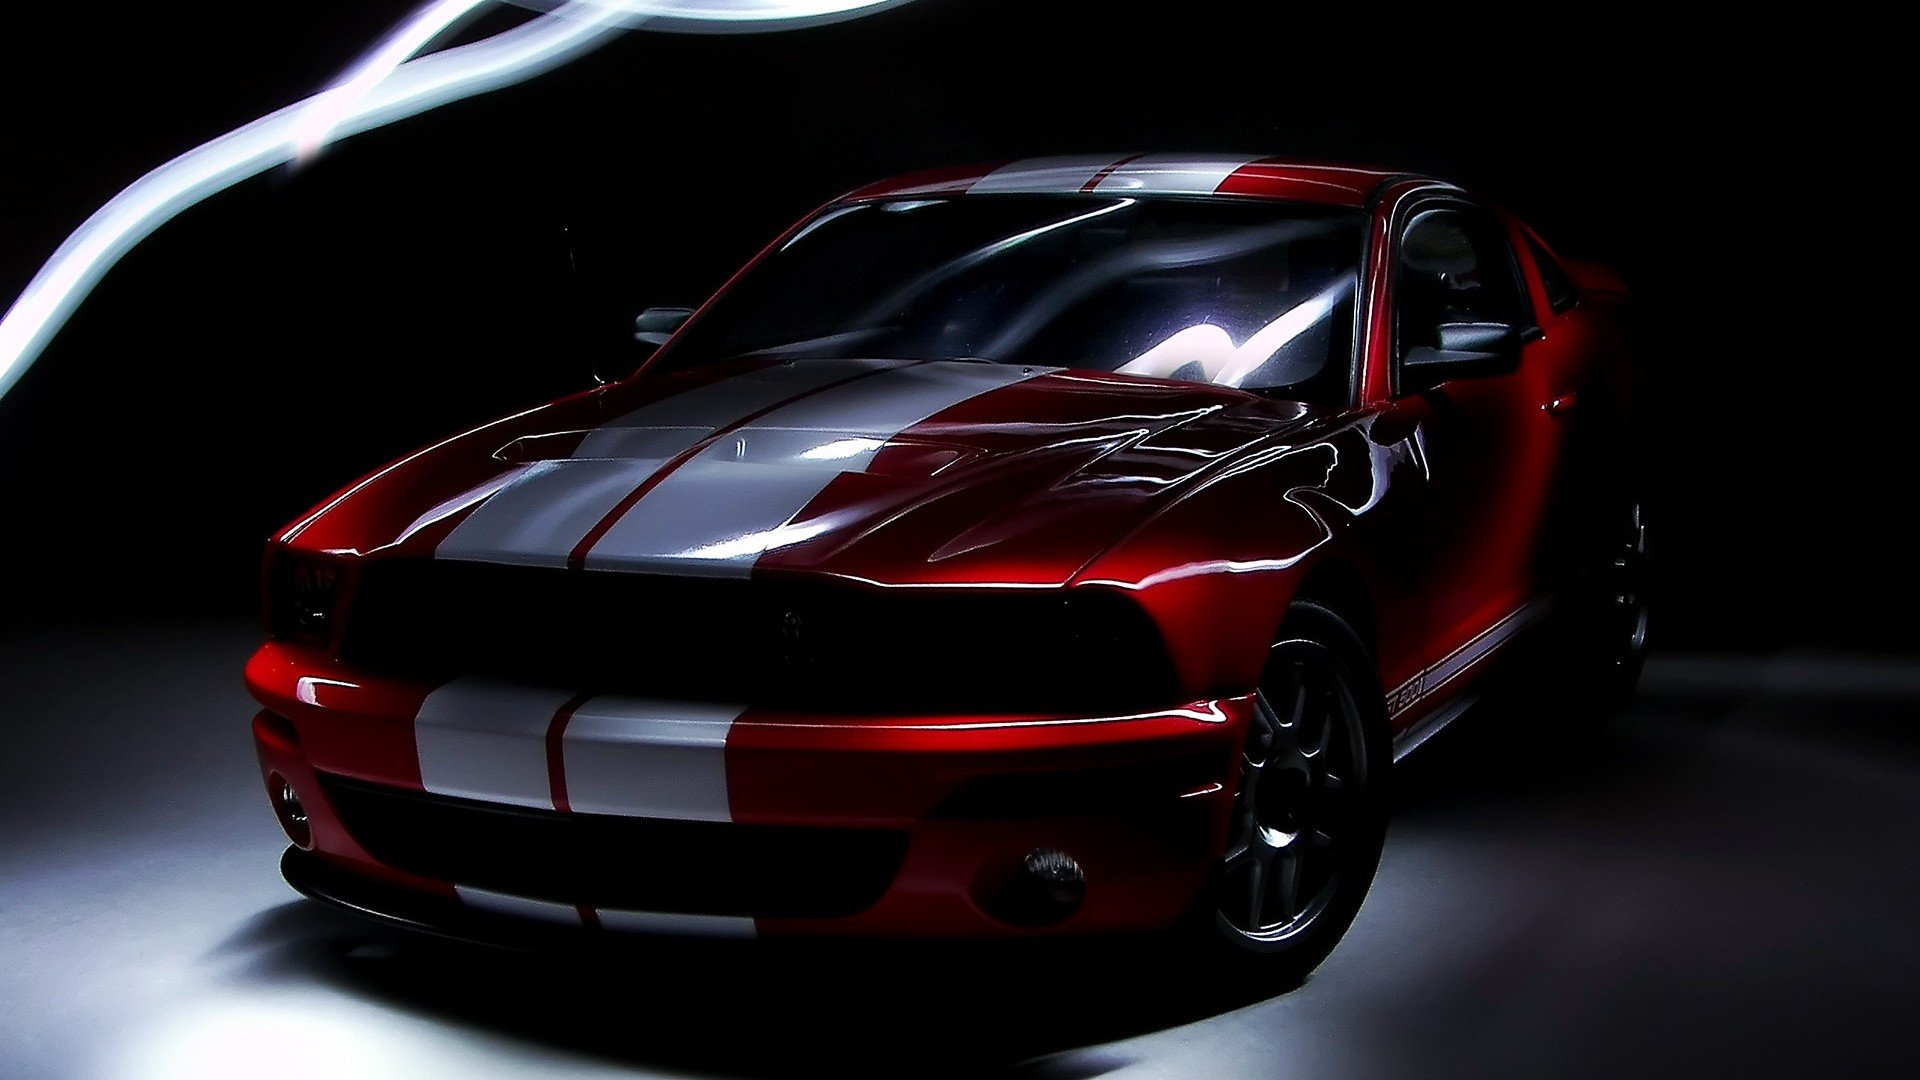 Best Ford Mustang Shelby Gt500 Cobra Wallpaper Id 239975 For High